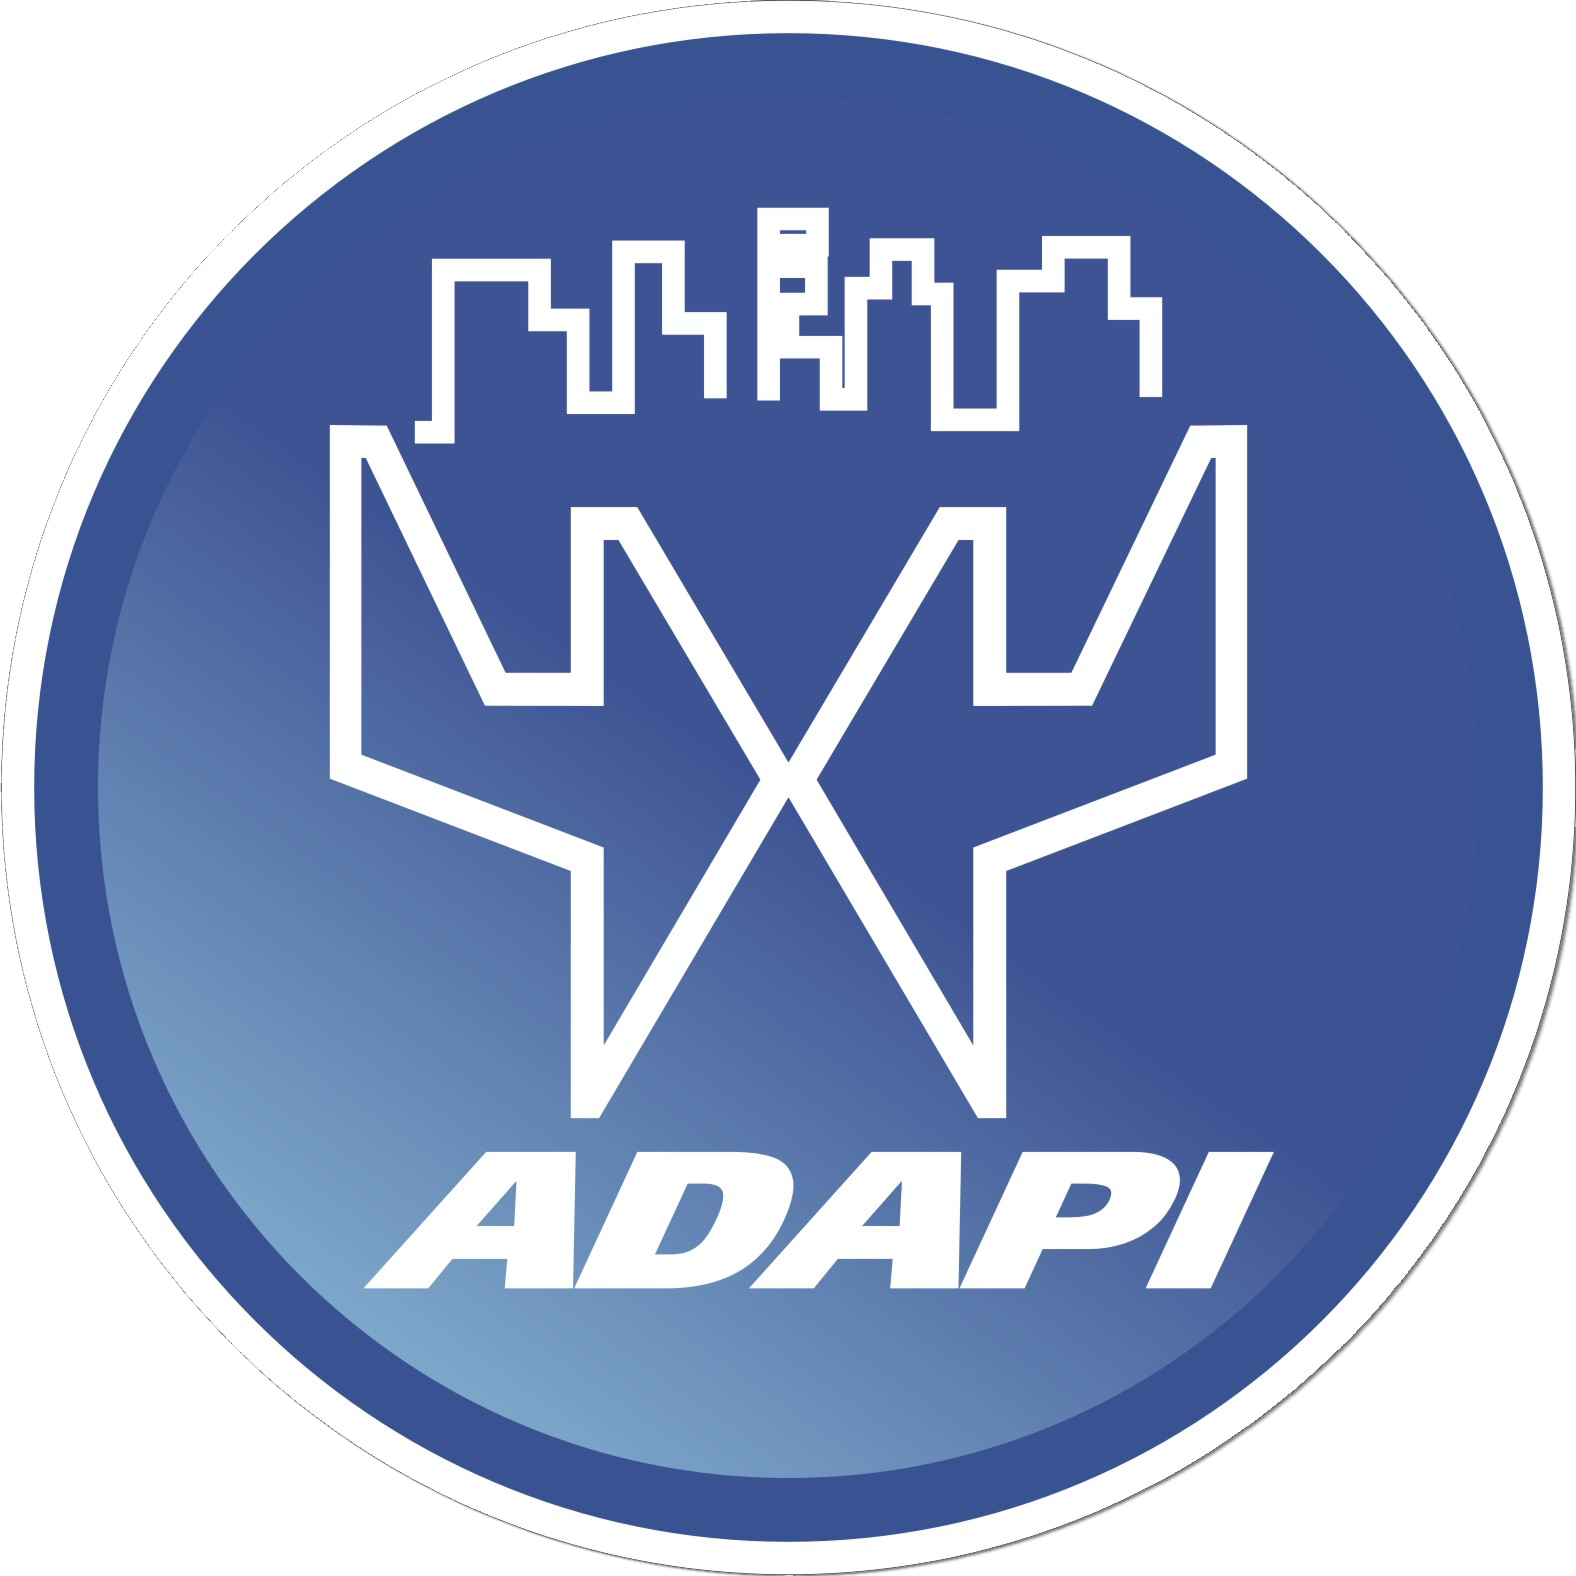 adapi logo